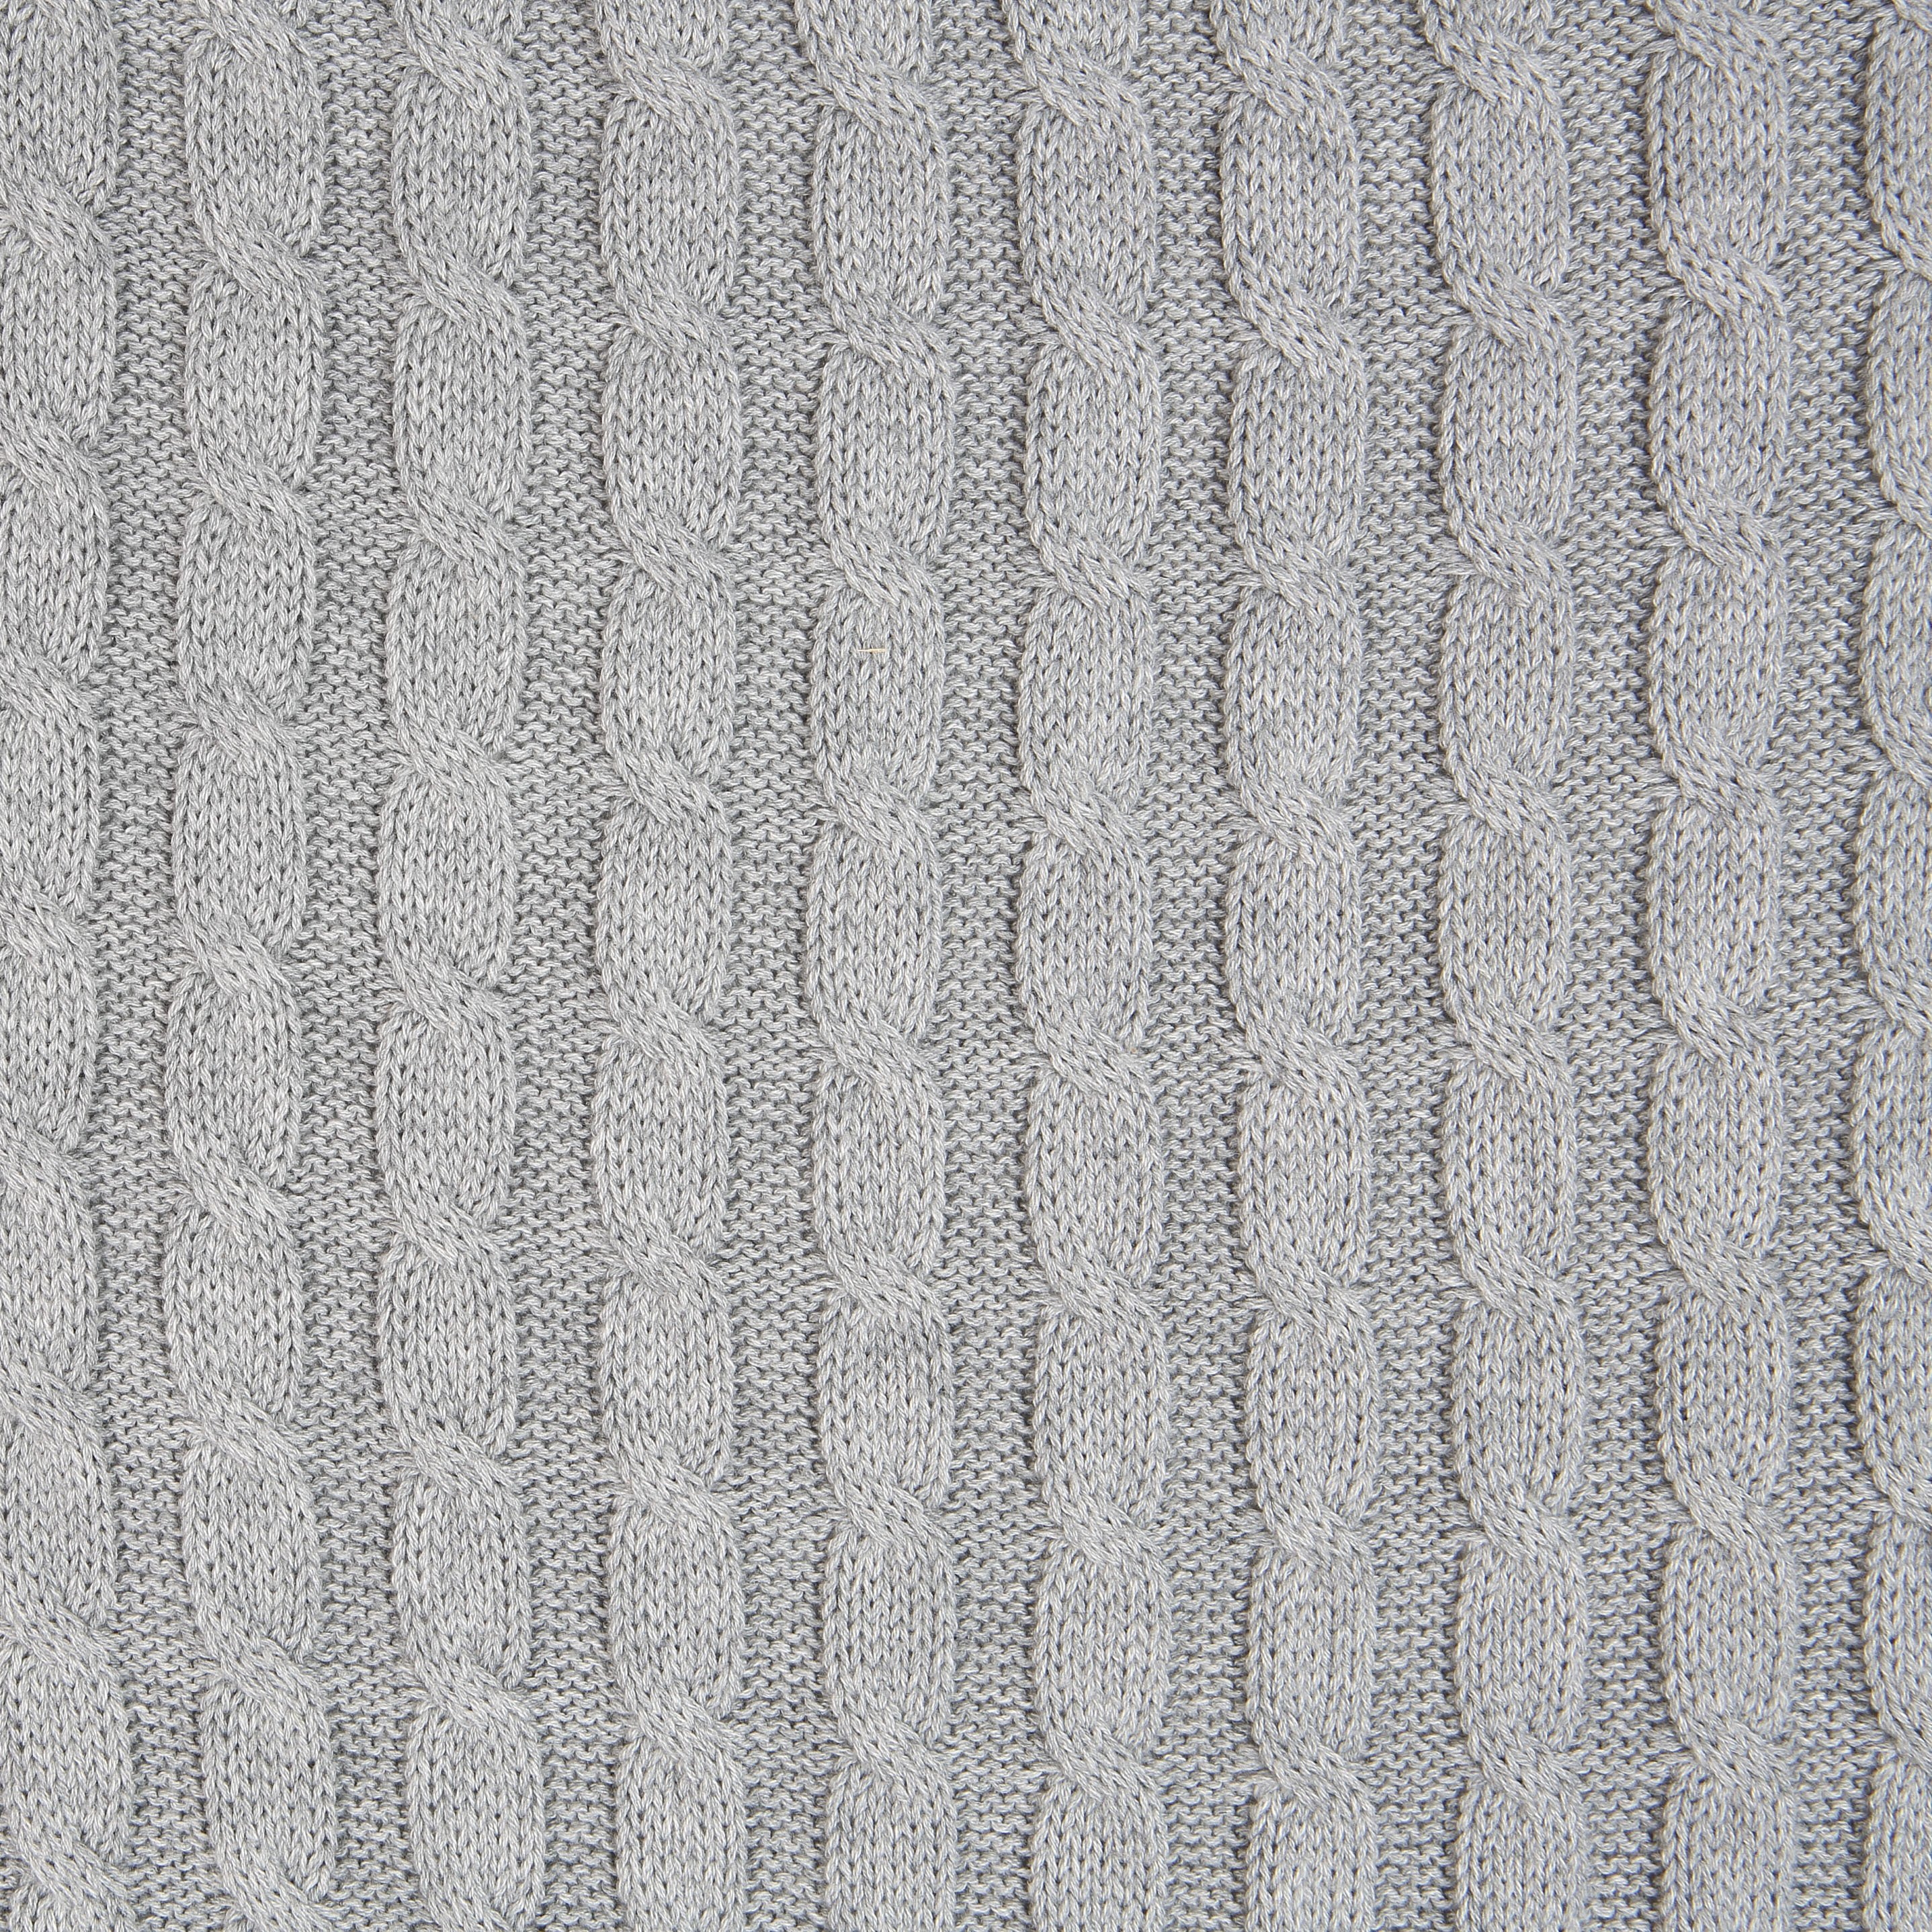 a9b9e242fc6 grey cable knit fabric which is soft to touch and great to wear.